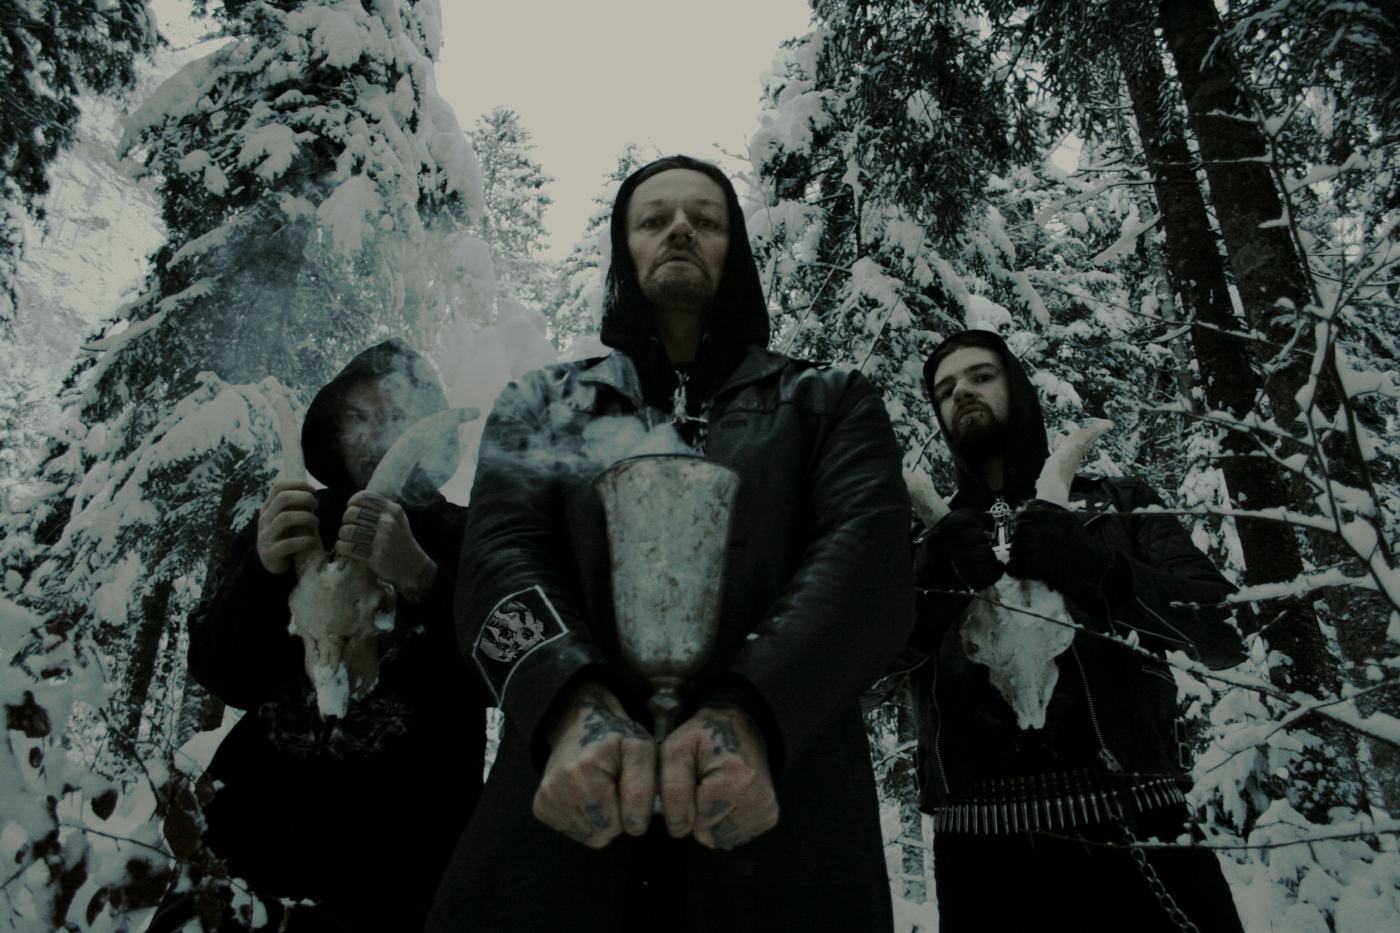 BELPHEGOR is working on new album for 2020